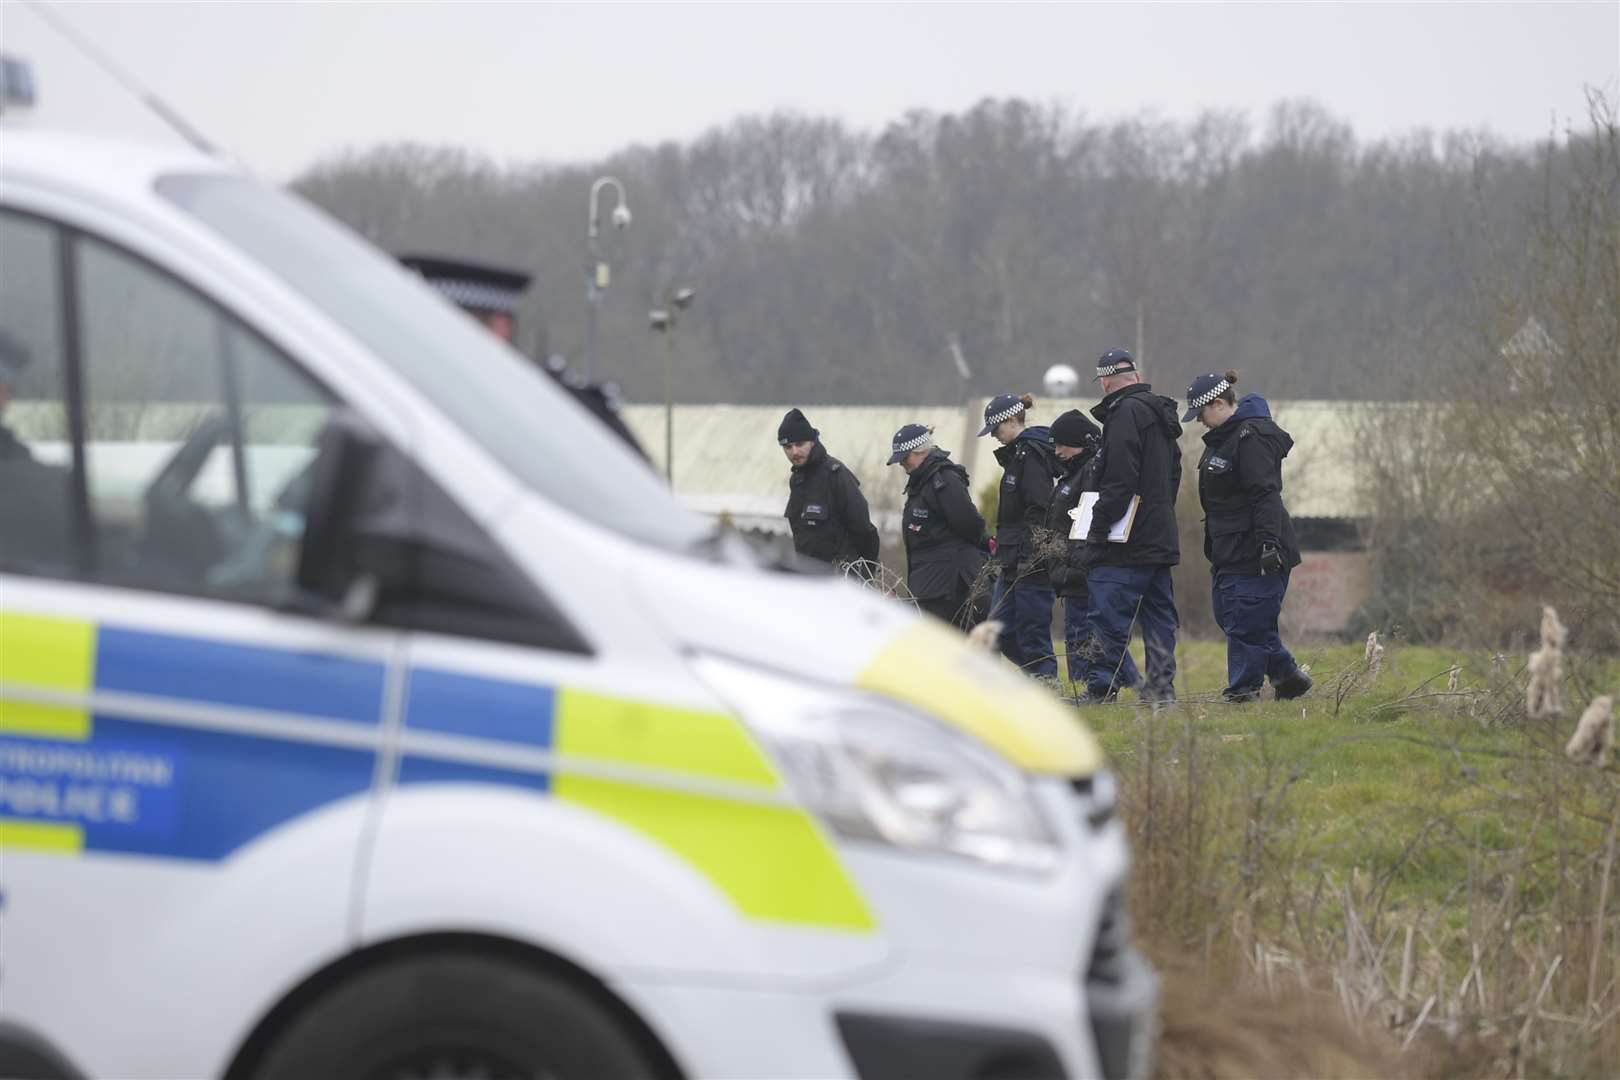 Police search the Bears Lane site near Great Chart, Ashford Picture: Barry Goodwin